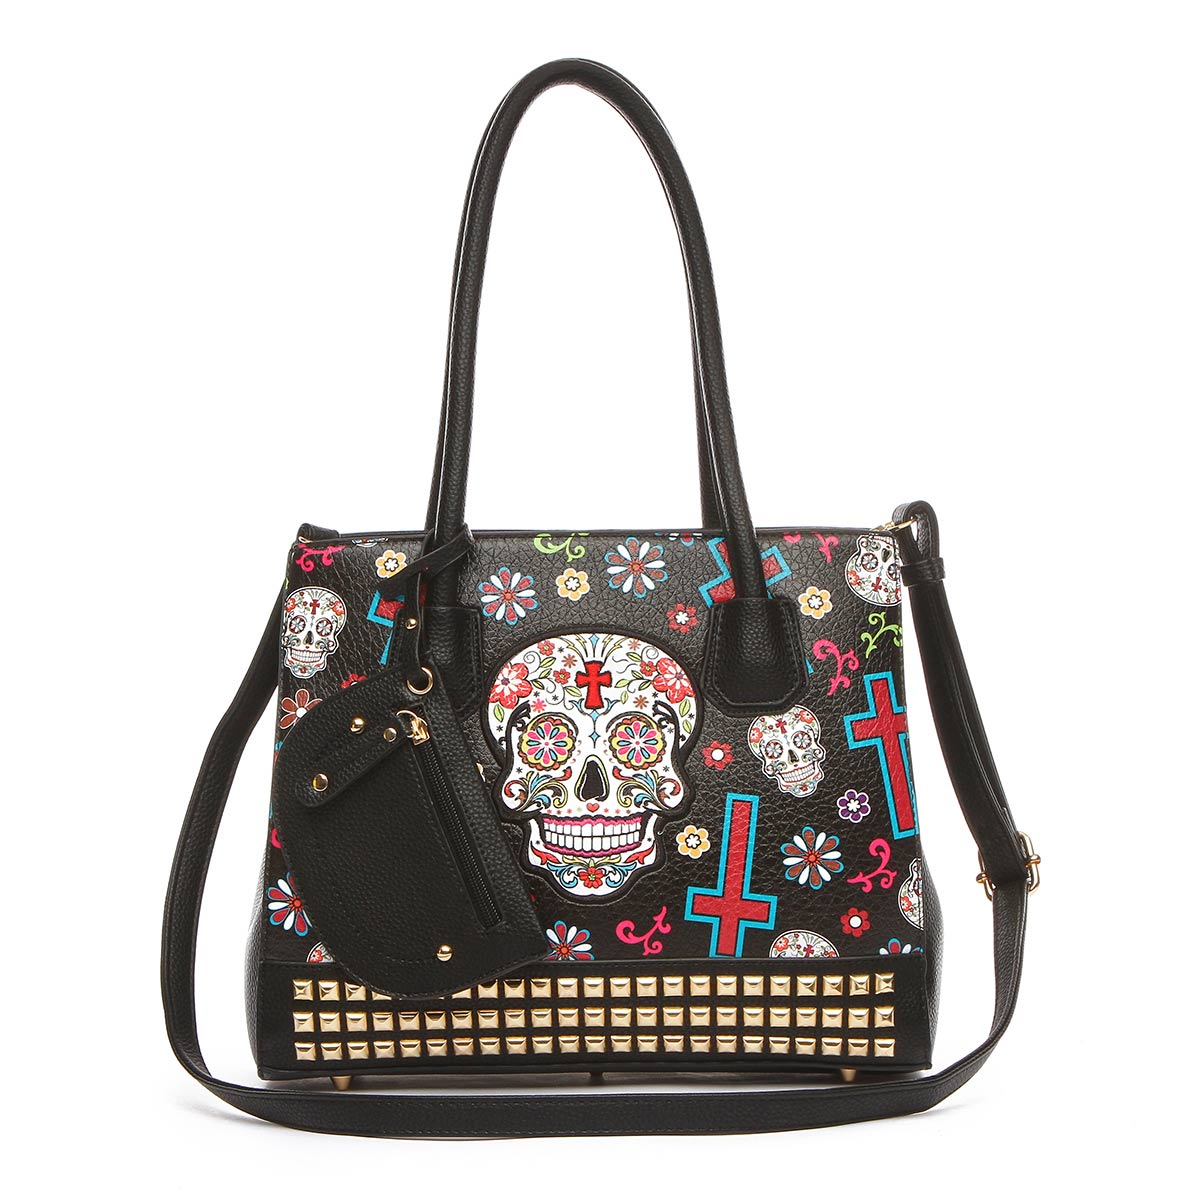 Western Cowgirl Skull Tote Bag With Pouch Black